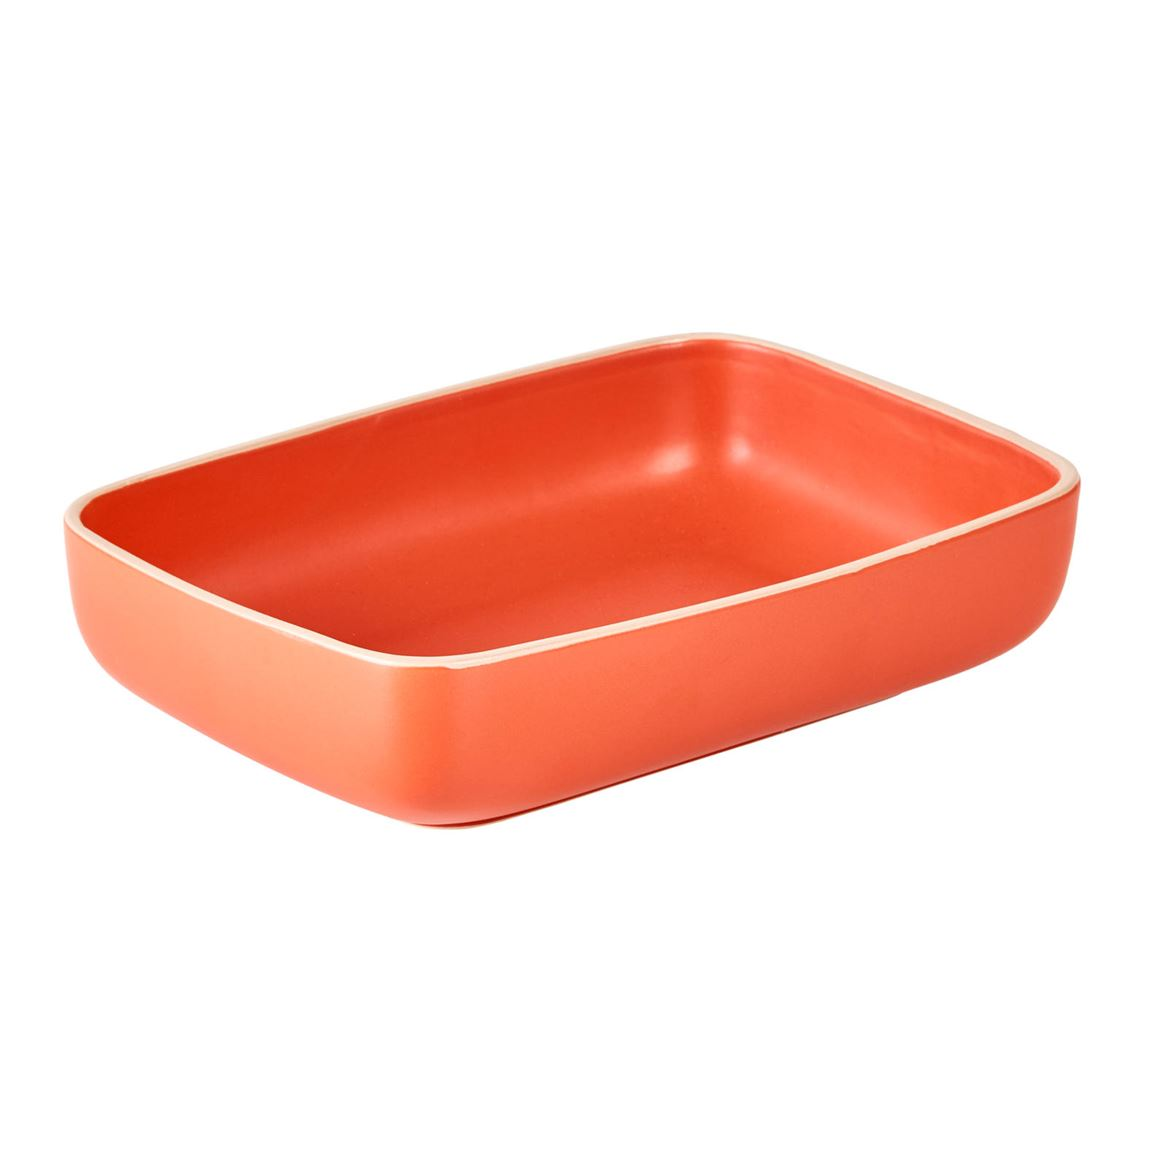 ELEMENTS Bowl oranje H 5 x B 20 x L 14.2 cm_elements-bowl-oranje-h-5-x-b-20-x-l-14-2-cm